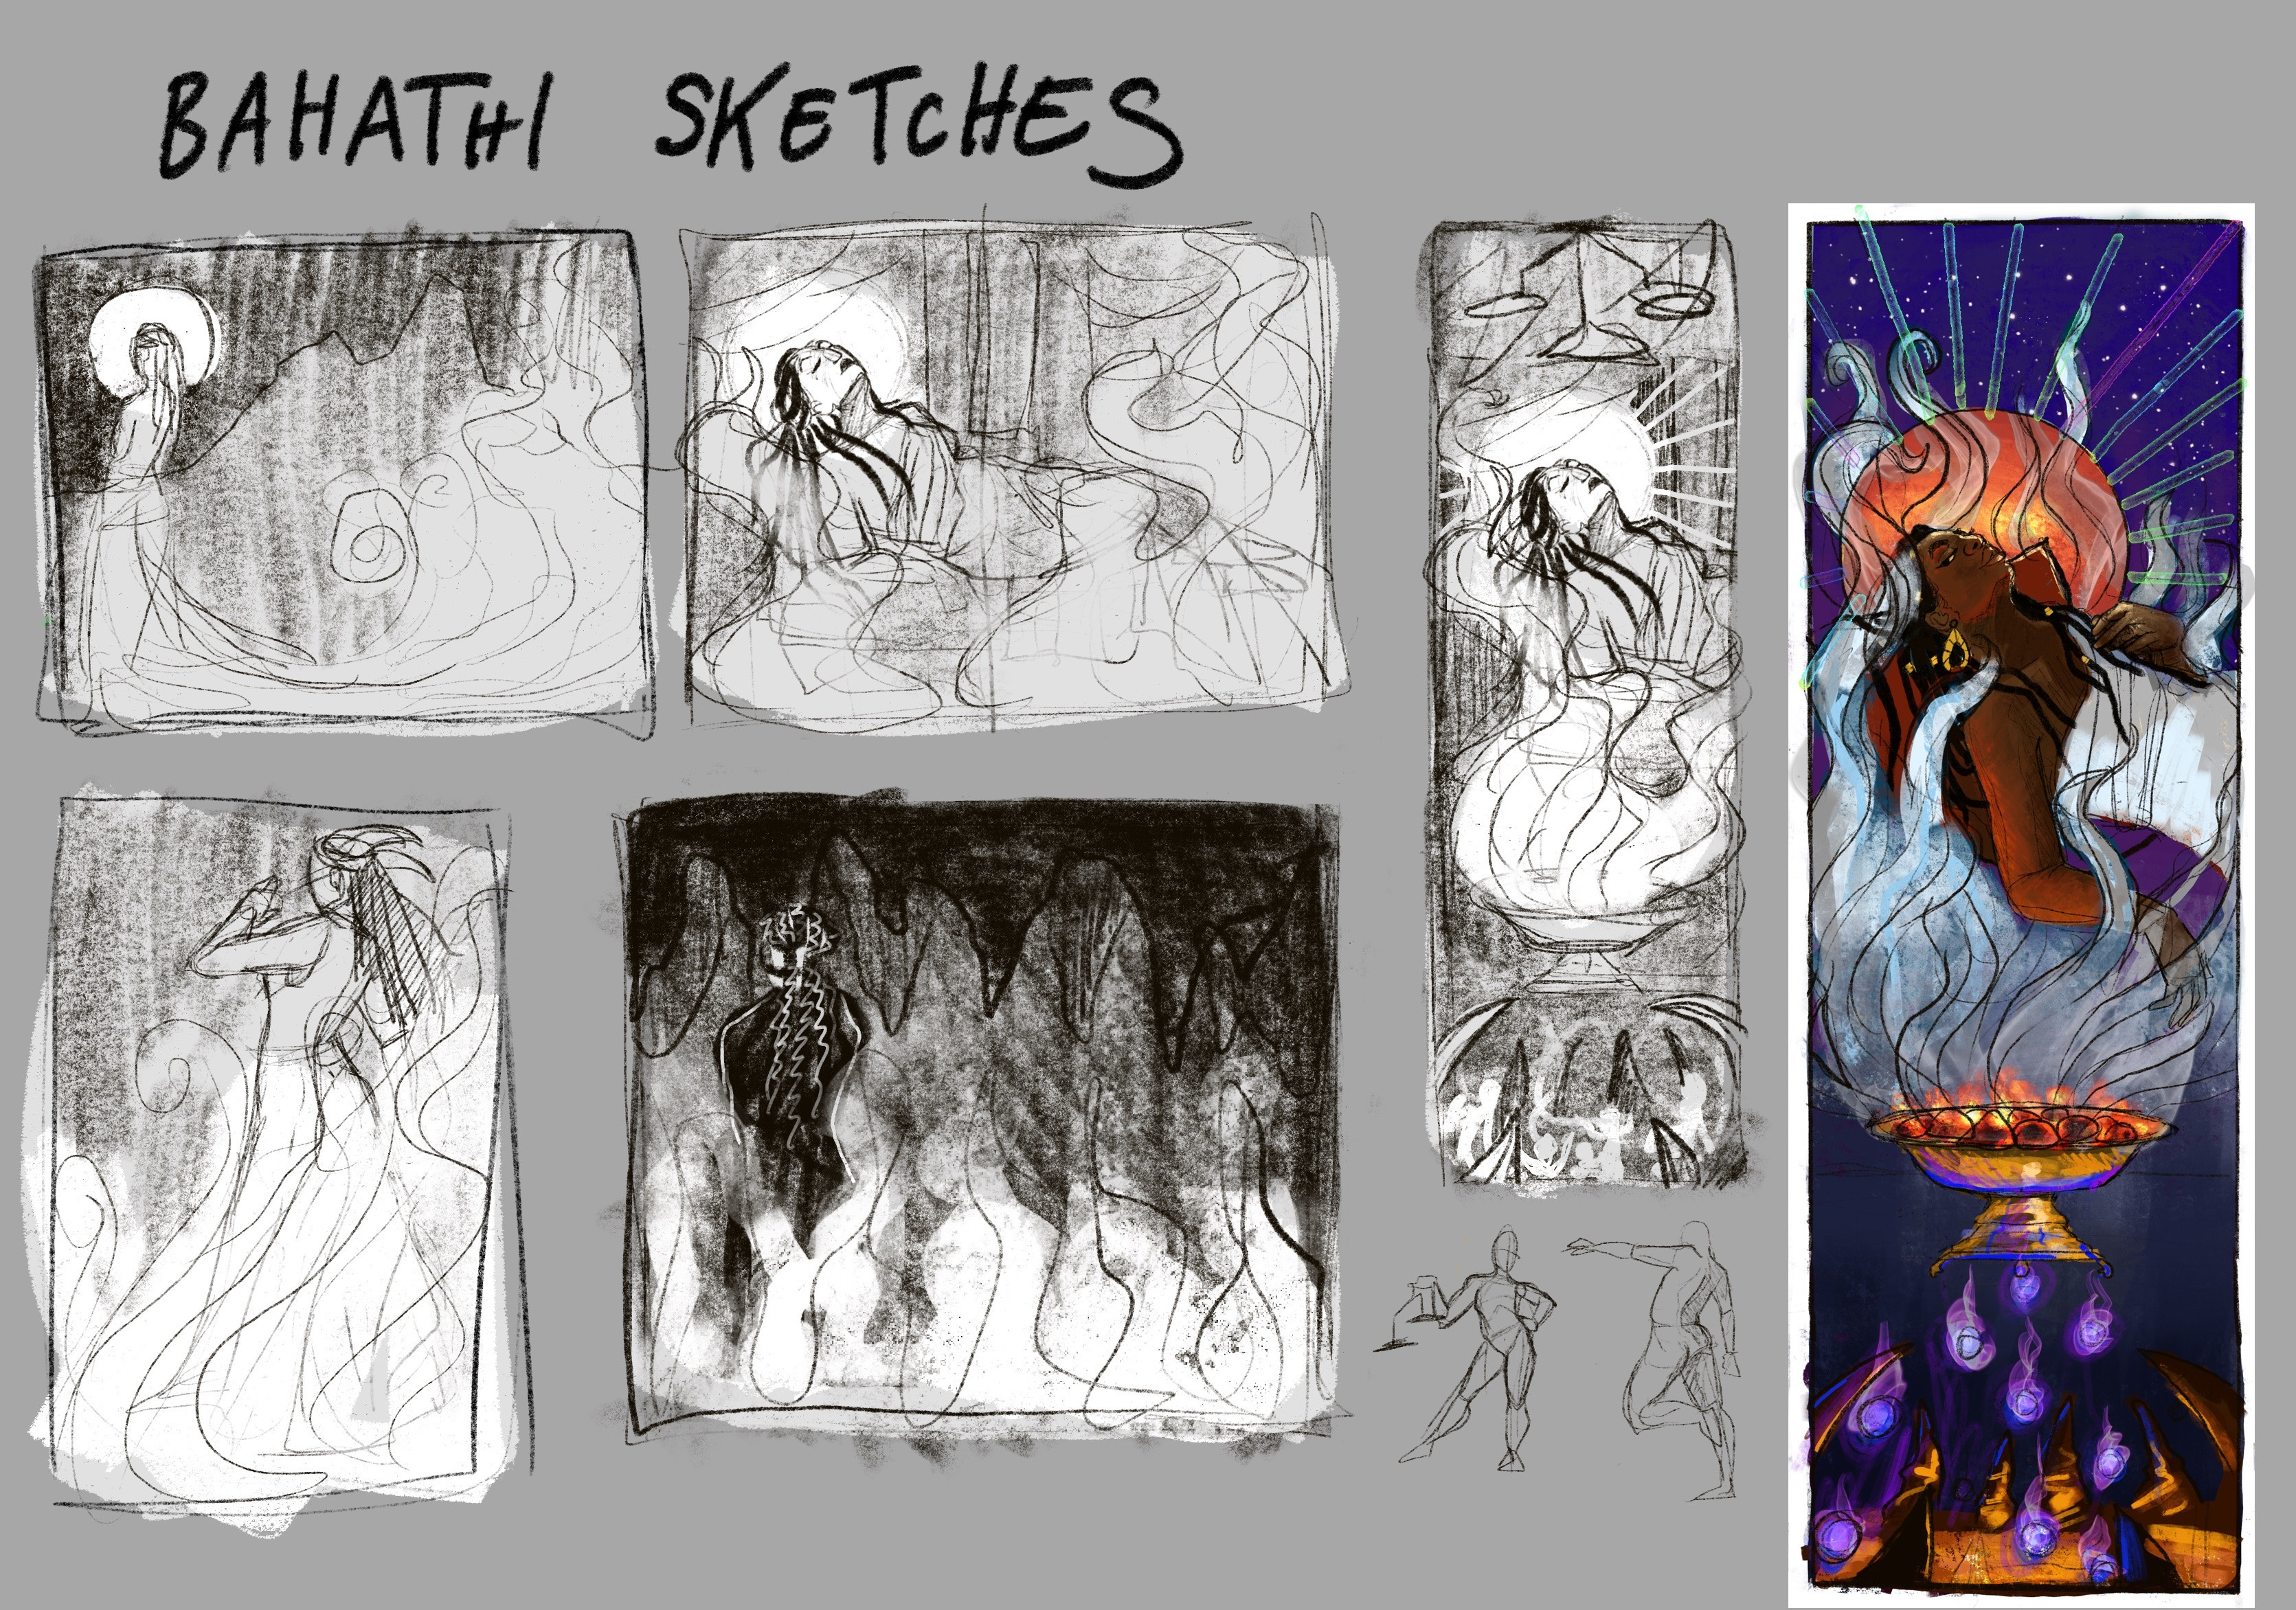 Initial round of thumbnailing with a color test for one of the ideas